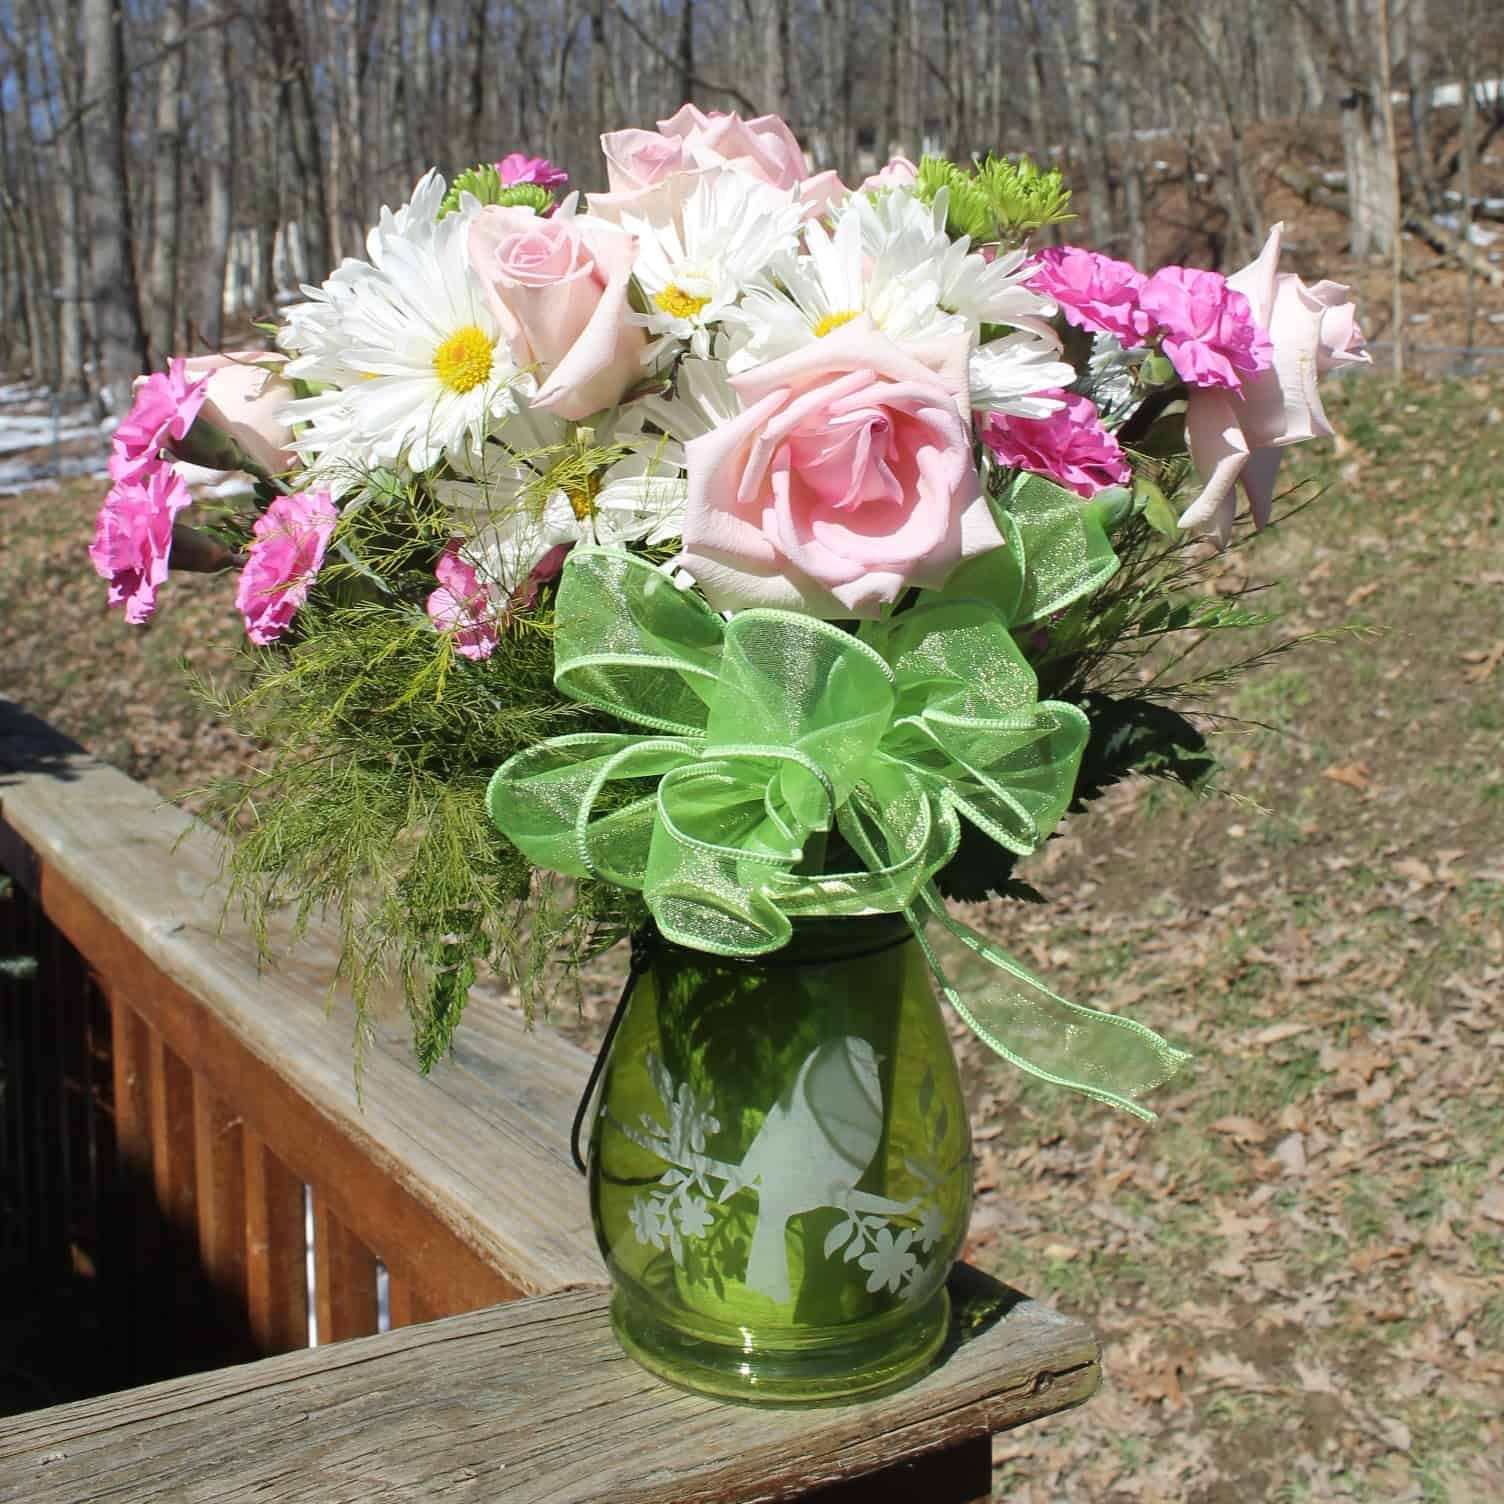 Celebrate Spring With Gorgeous Flowers 7 Ways To Reuse A Flower Vase Pretty Opinionated